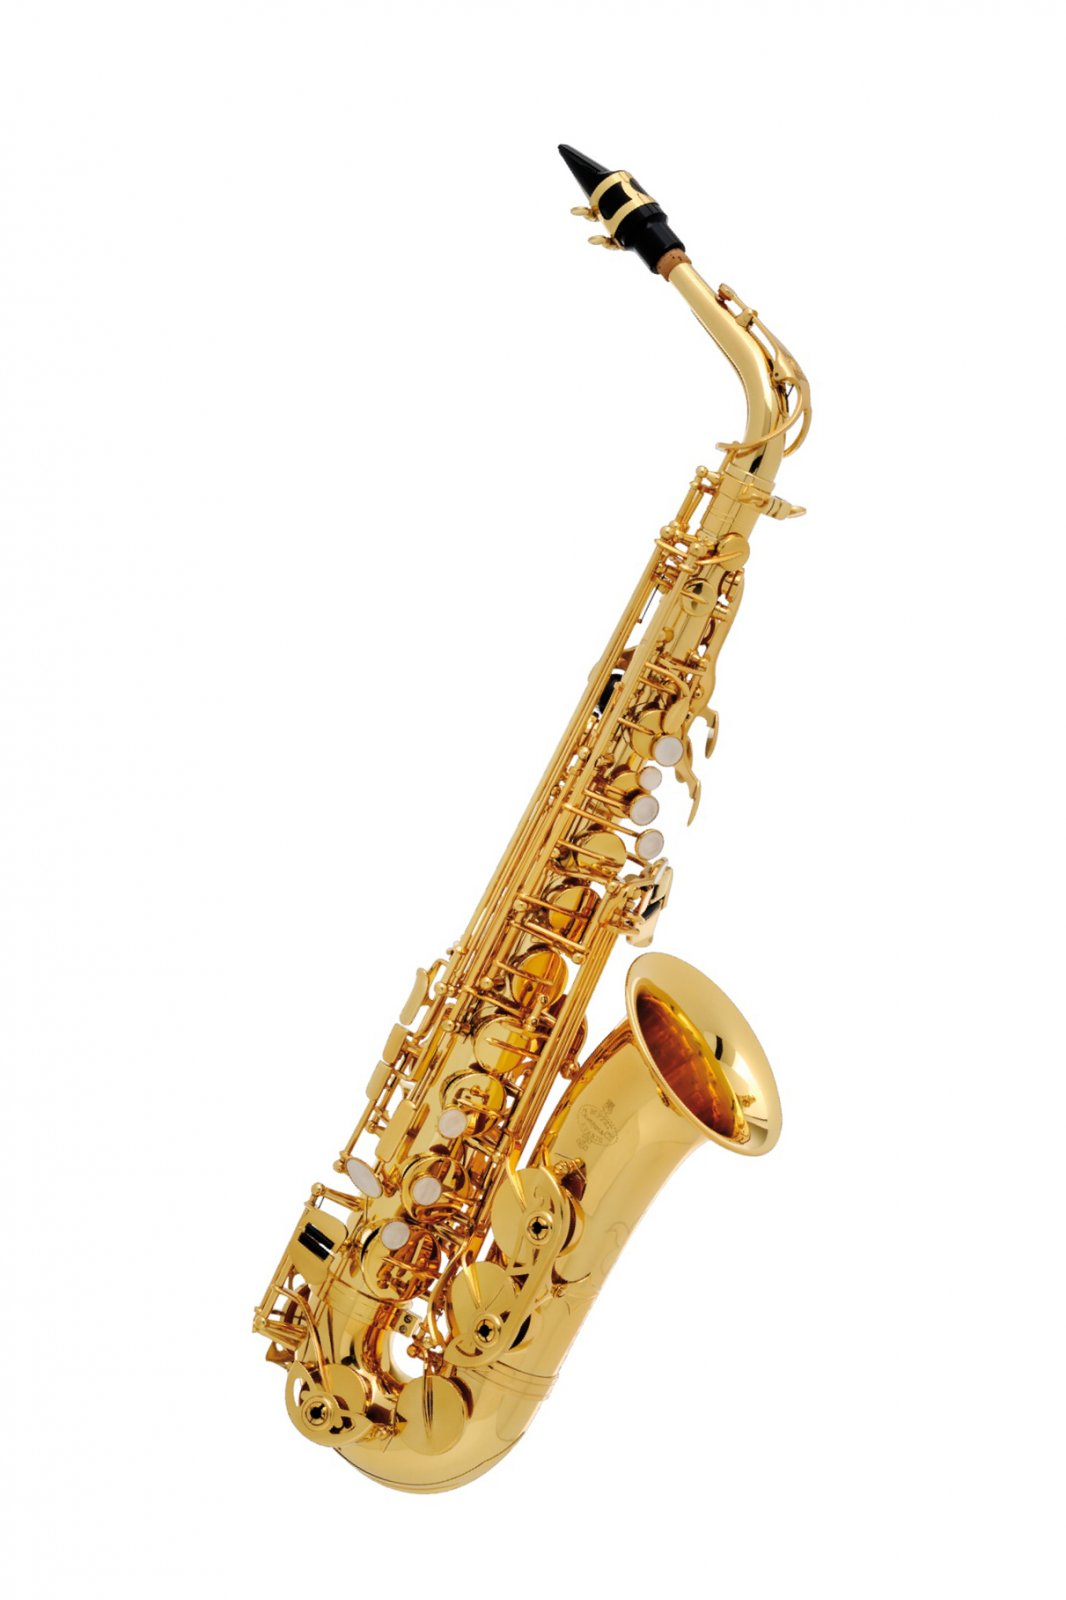 Buffet Crampon 100 Series Student Alto Saxophone